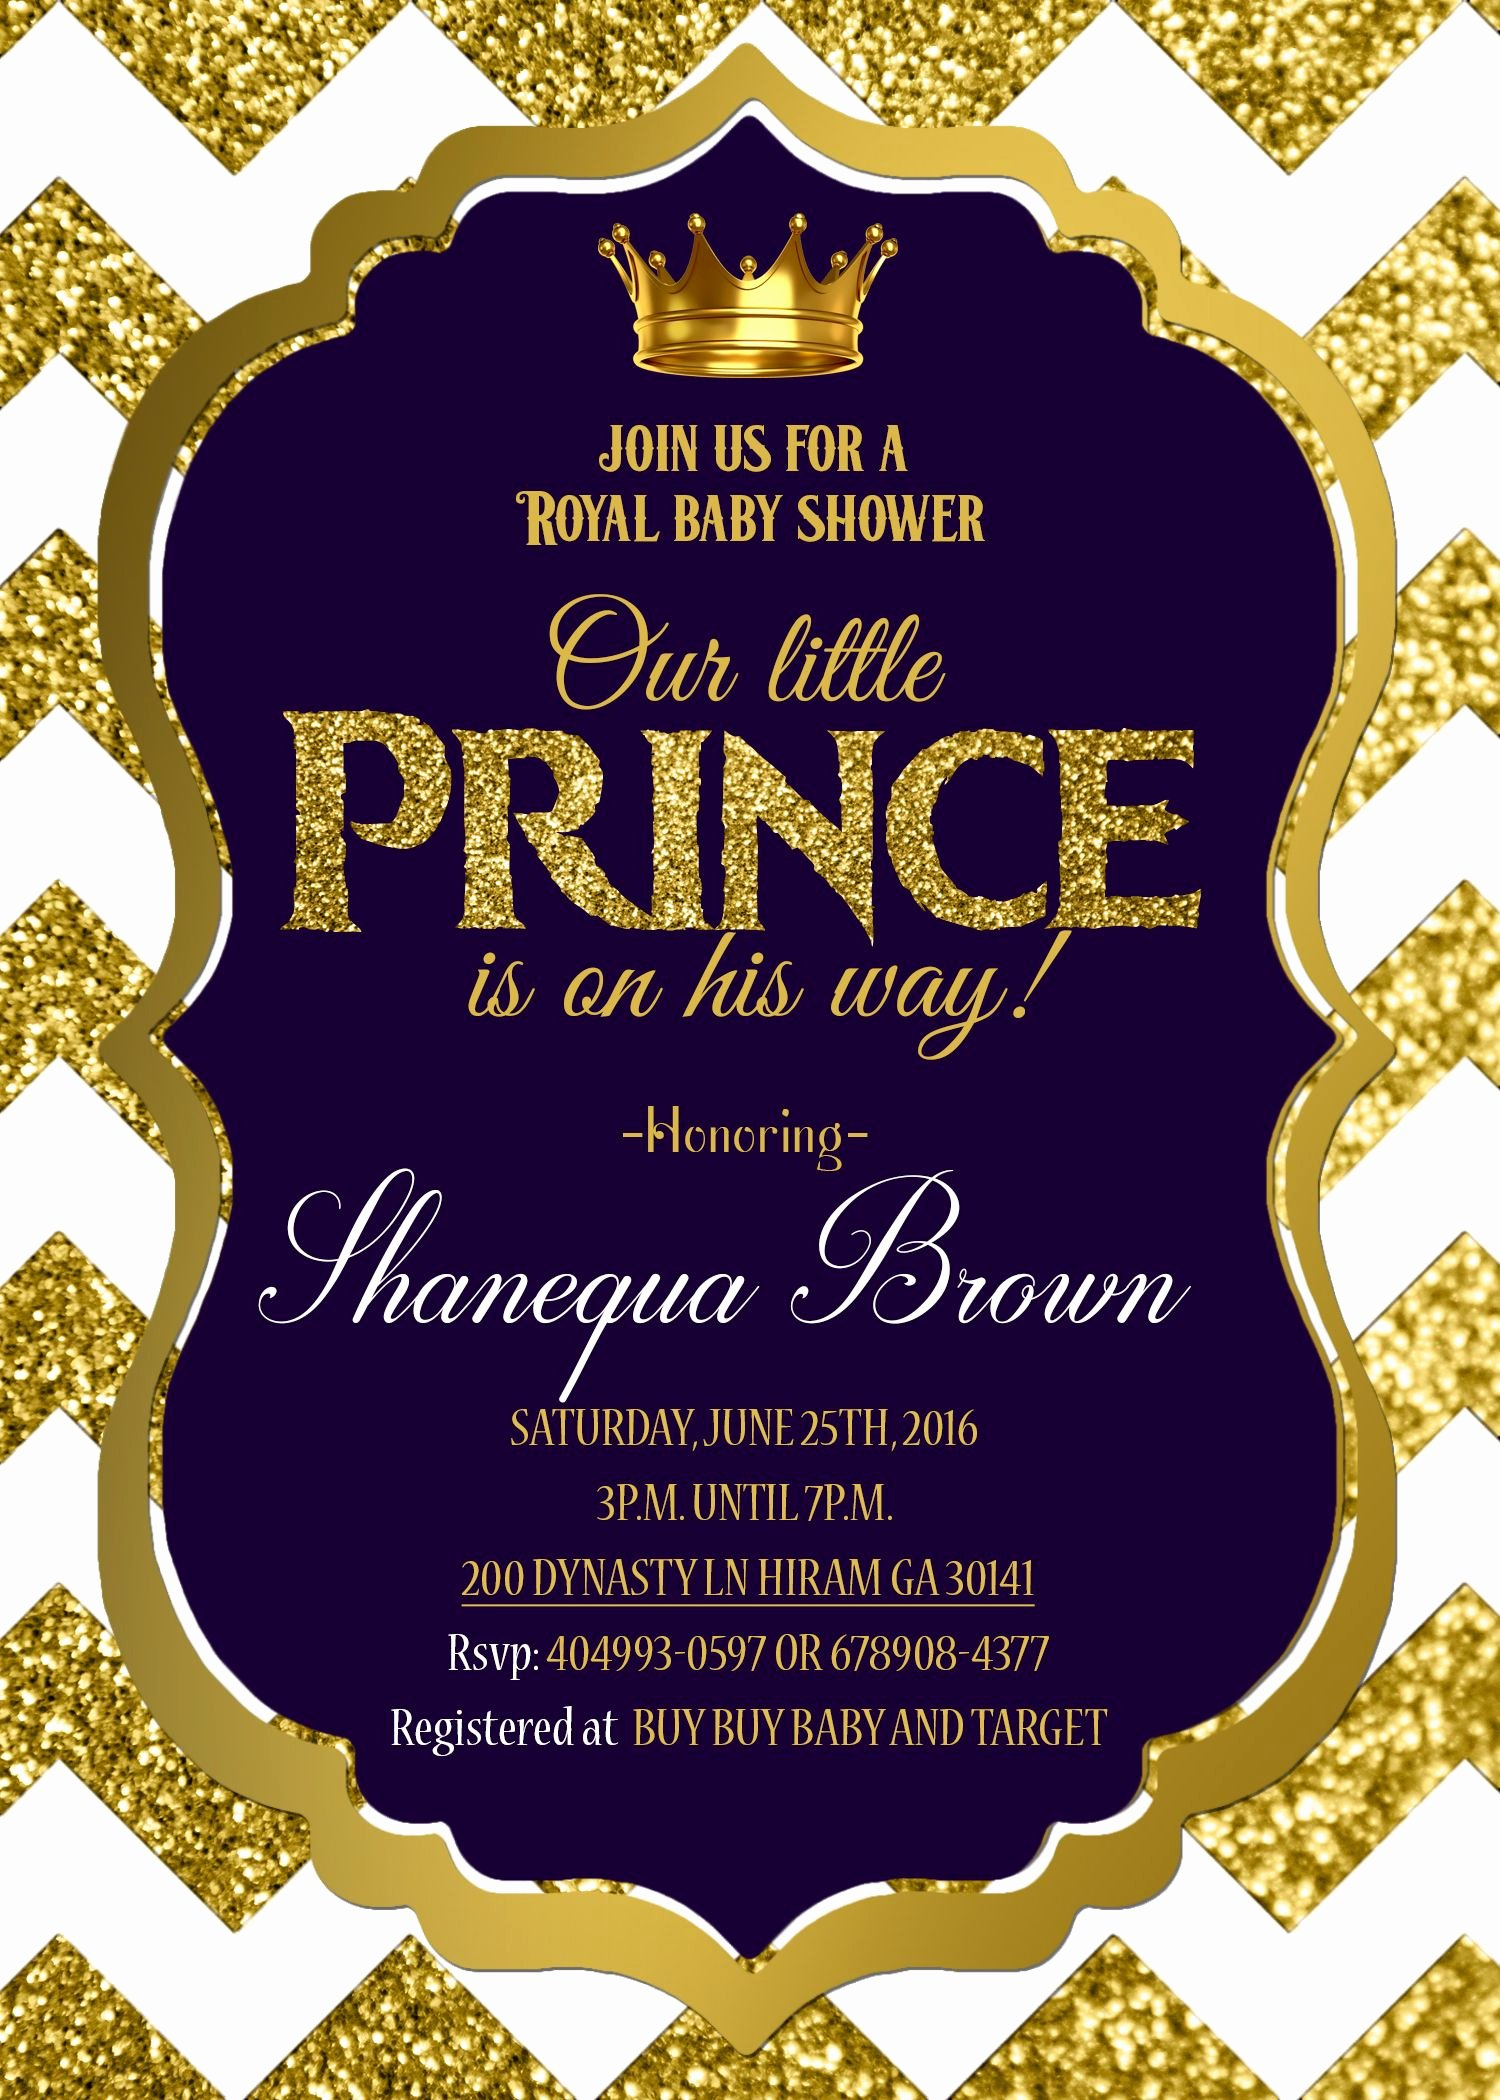 Royal Baby Shower Invitations Unique Royal Prince Baby Shower Invitation Printable Royal Baby